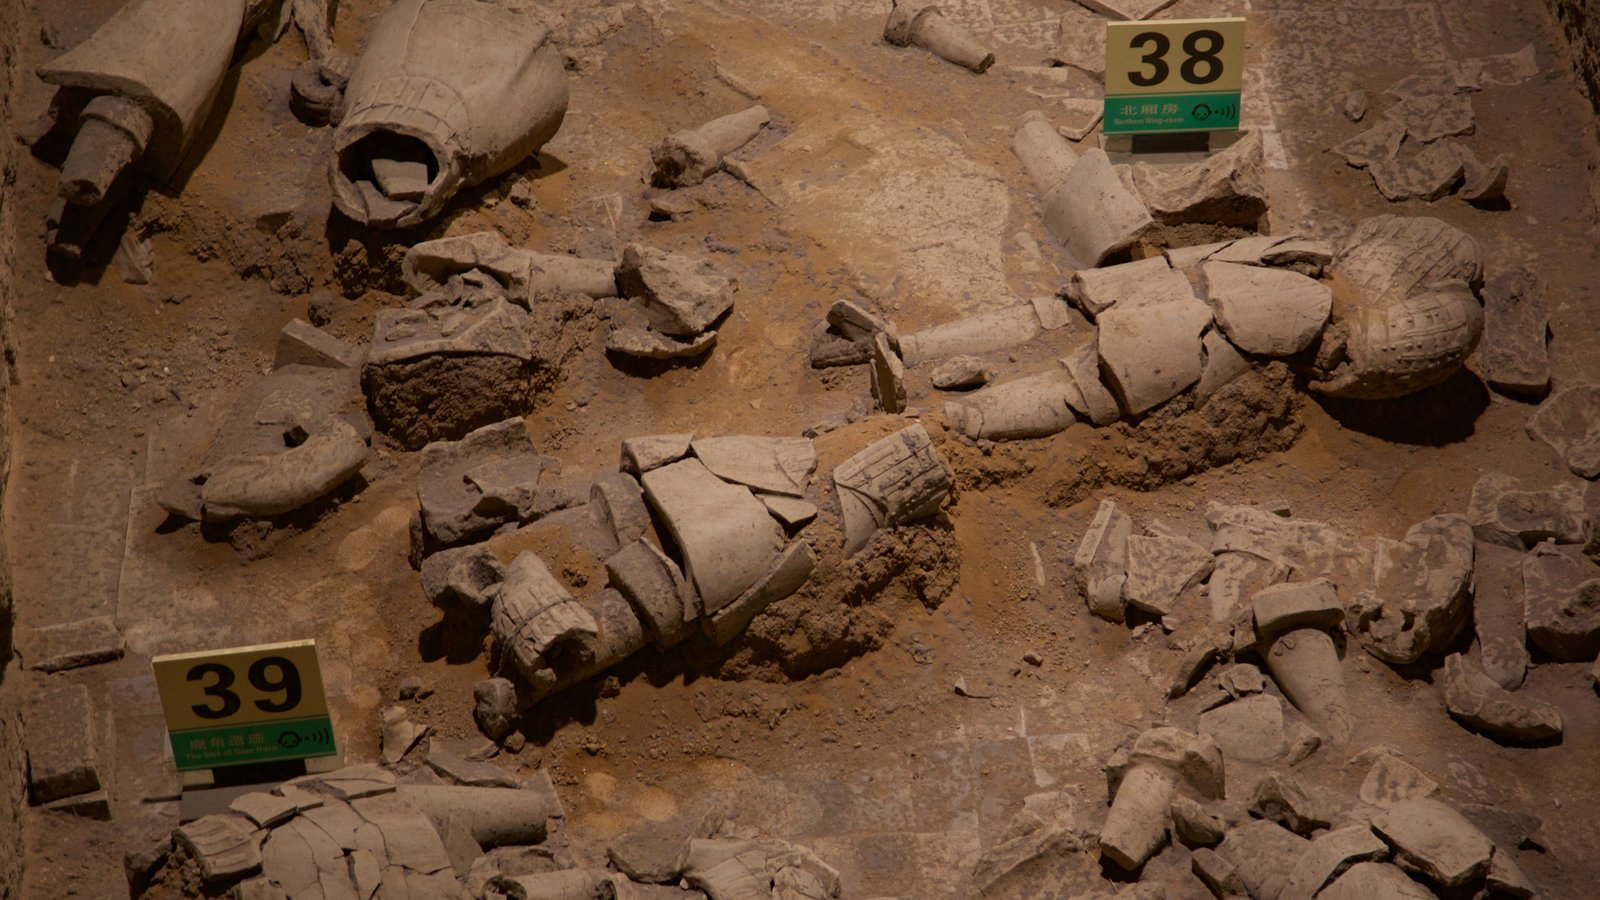 Terracota Army showing building ruins and interior views